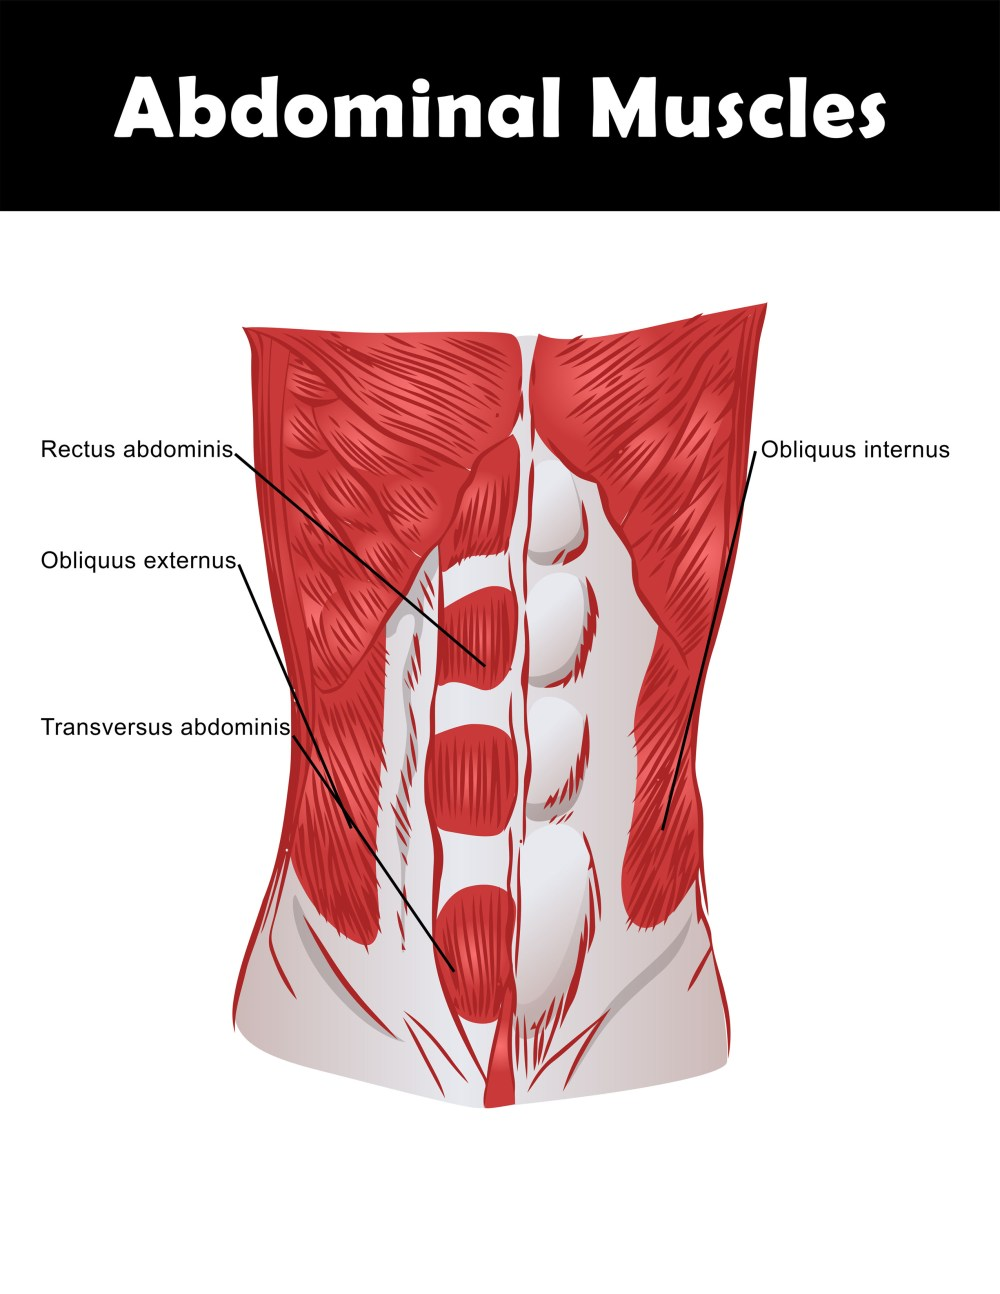 medium resolution of abdominal muscle anatomy chart you can download and print